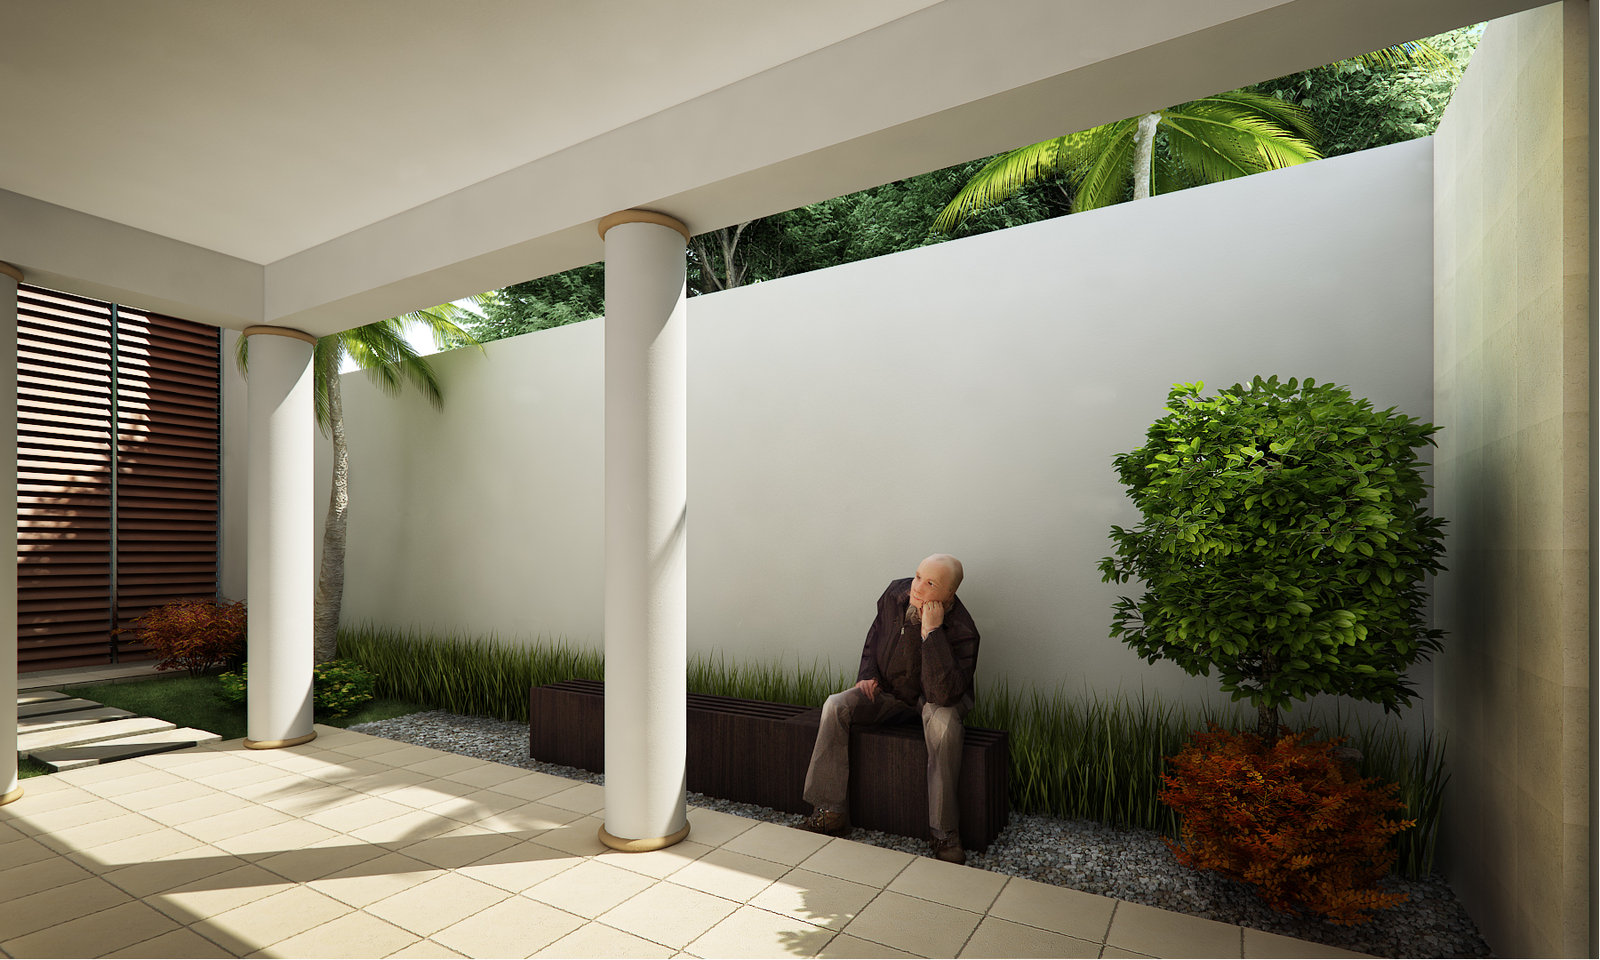 Home & Garden: Courtyard Design And Landscaping Ideas